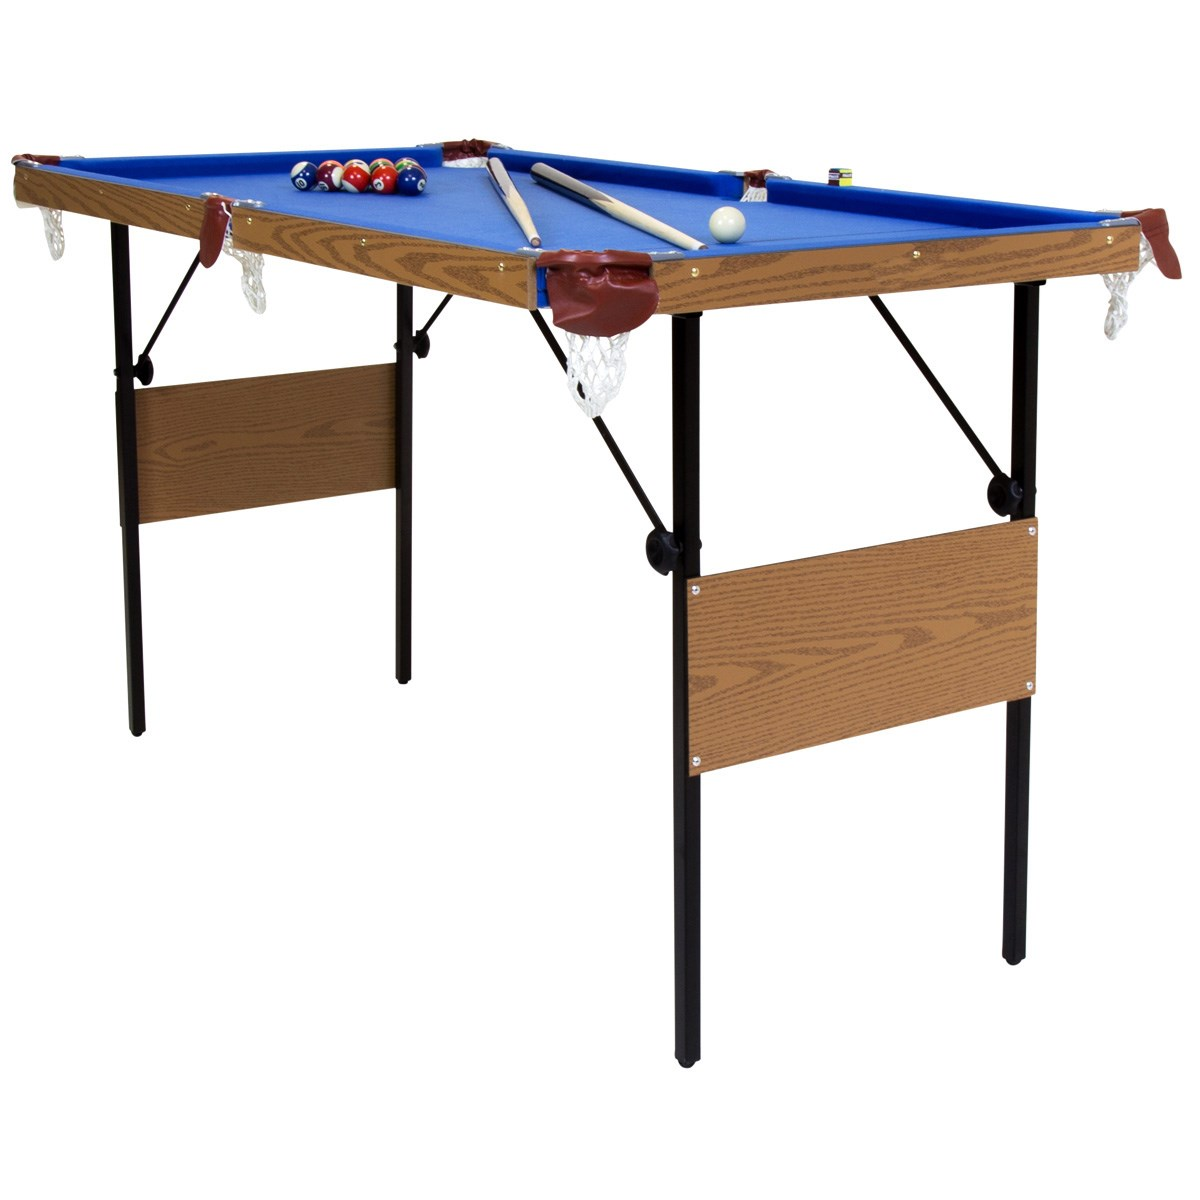 4ft 6 Folding Pool Table